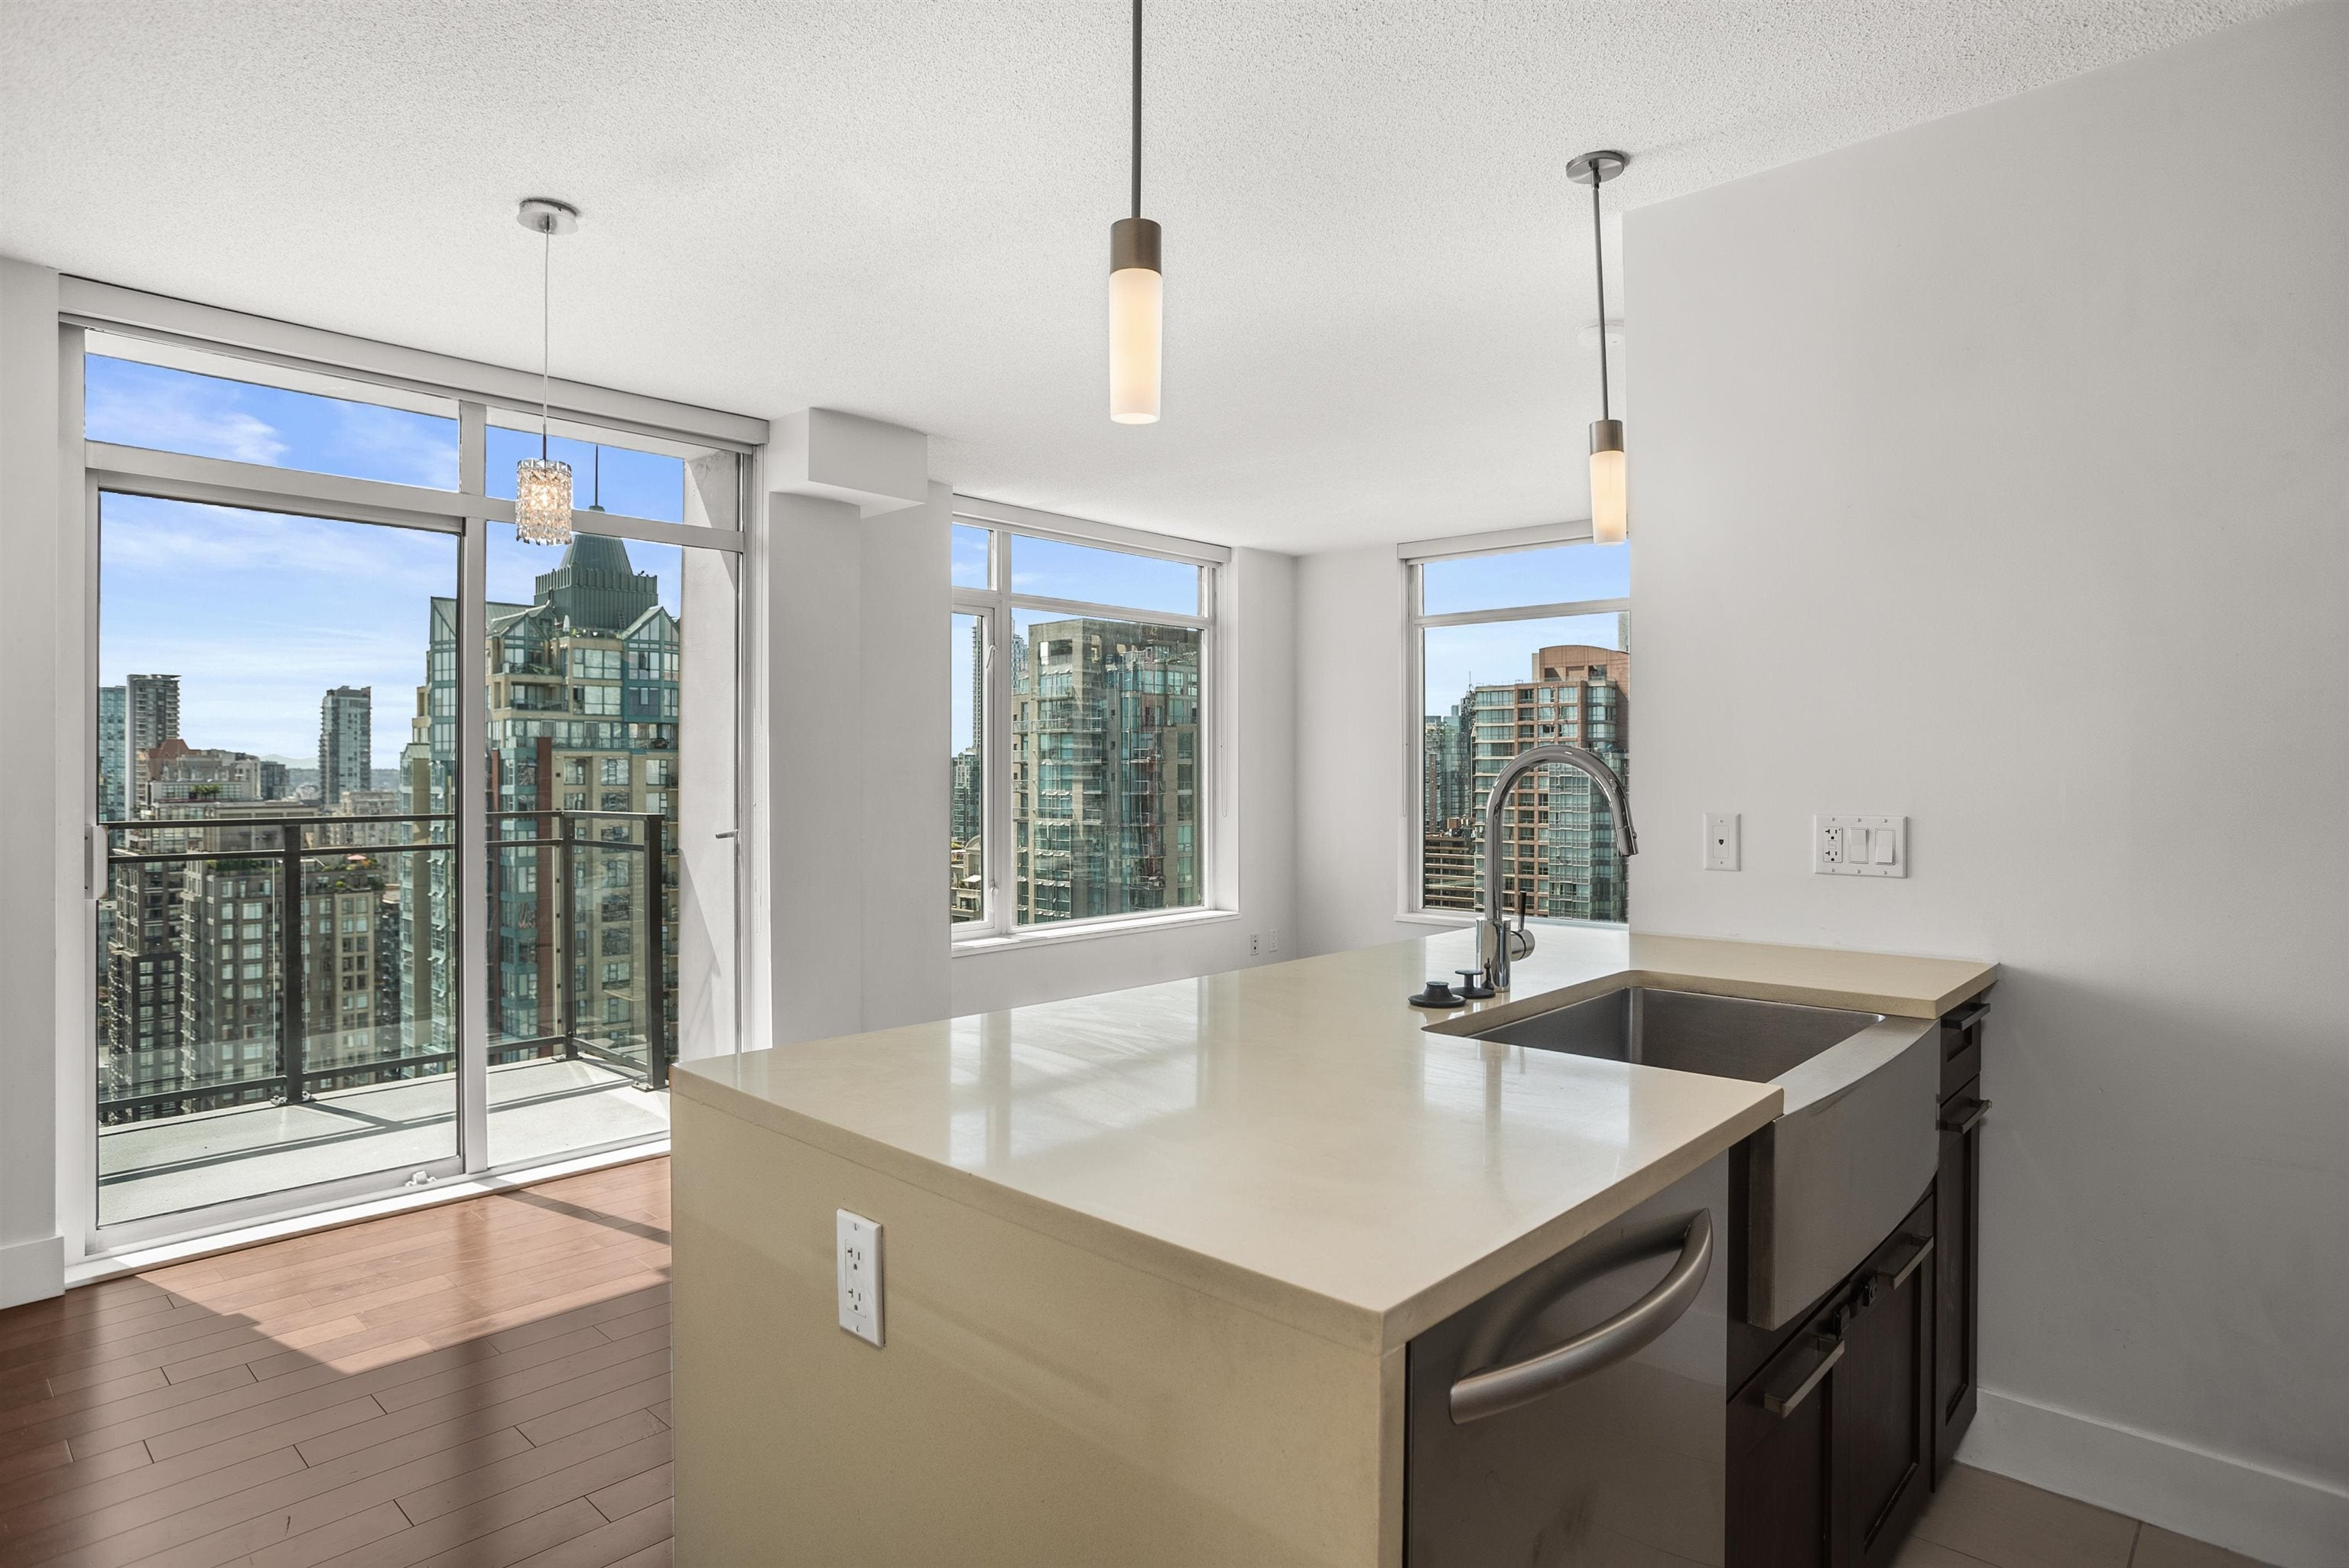 3001 888 HOMER STREET - Downtown VW Apartment/Condo for sale, 2 Bedrooms (R2609790) - #1